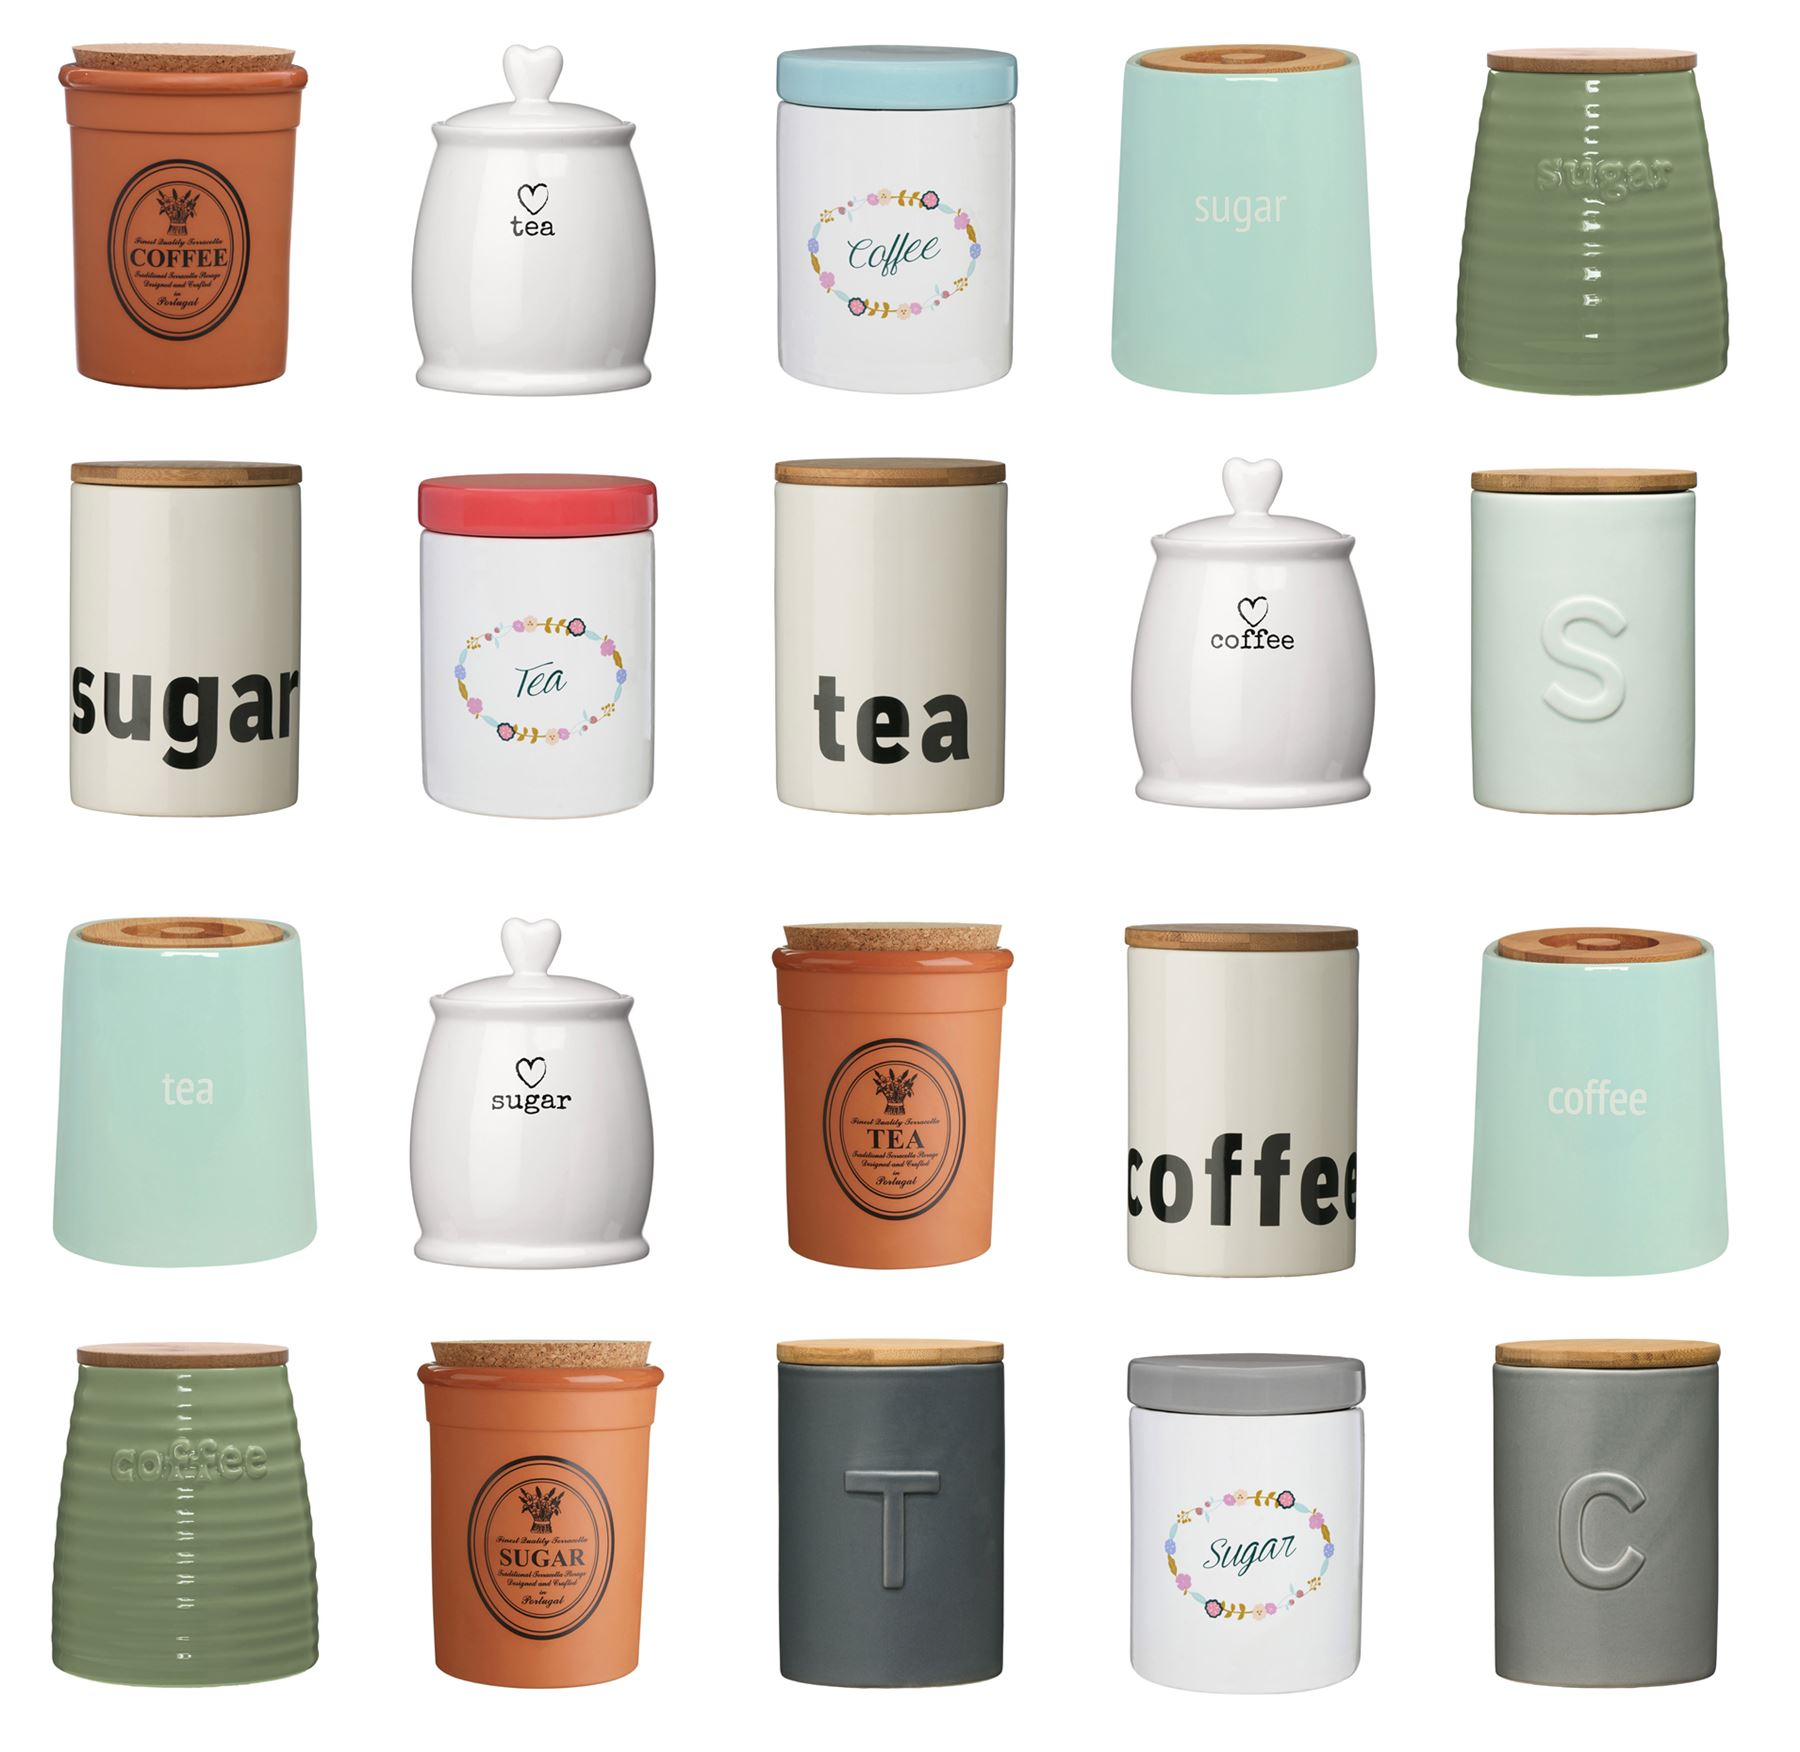 tea coffee sugar canisters pots kitchen storage jars /ceramic